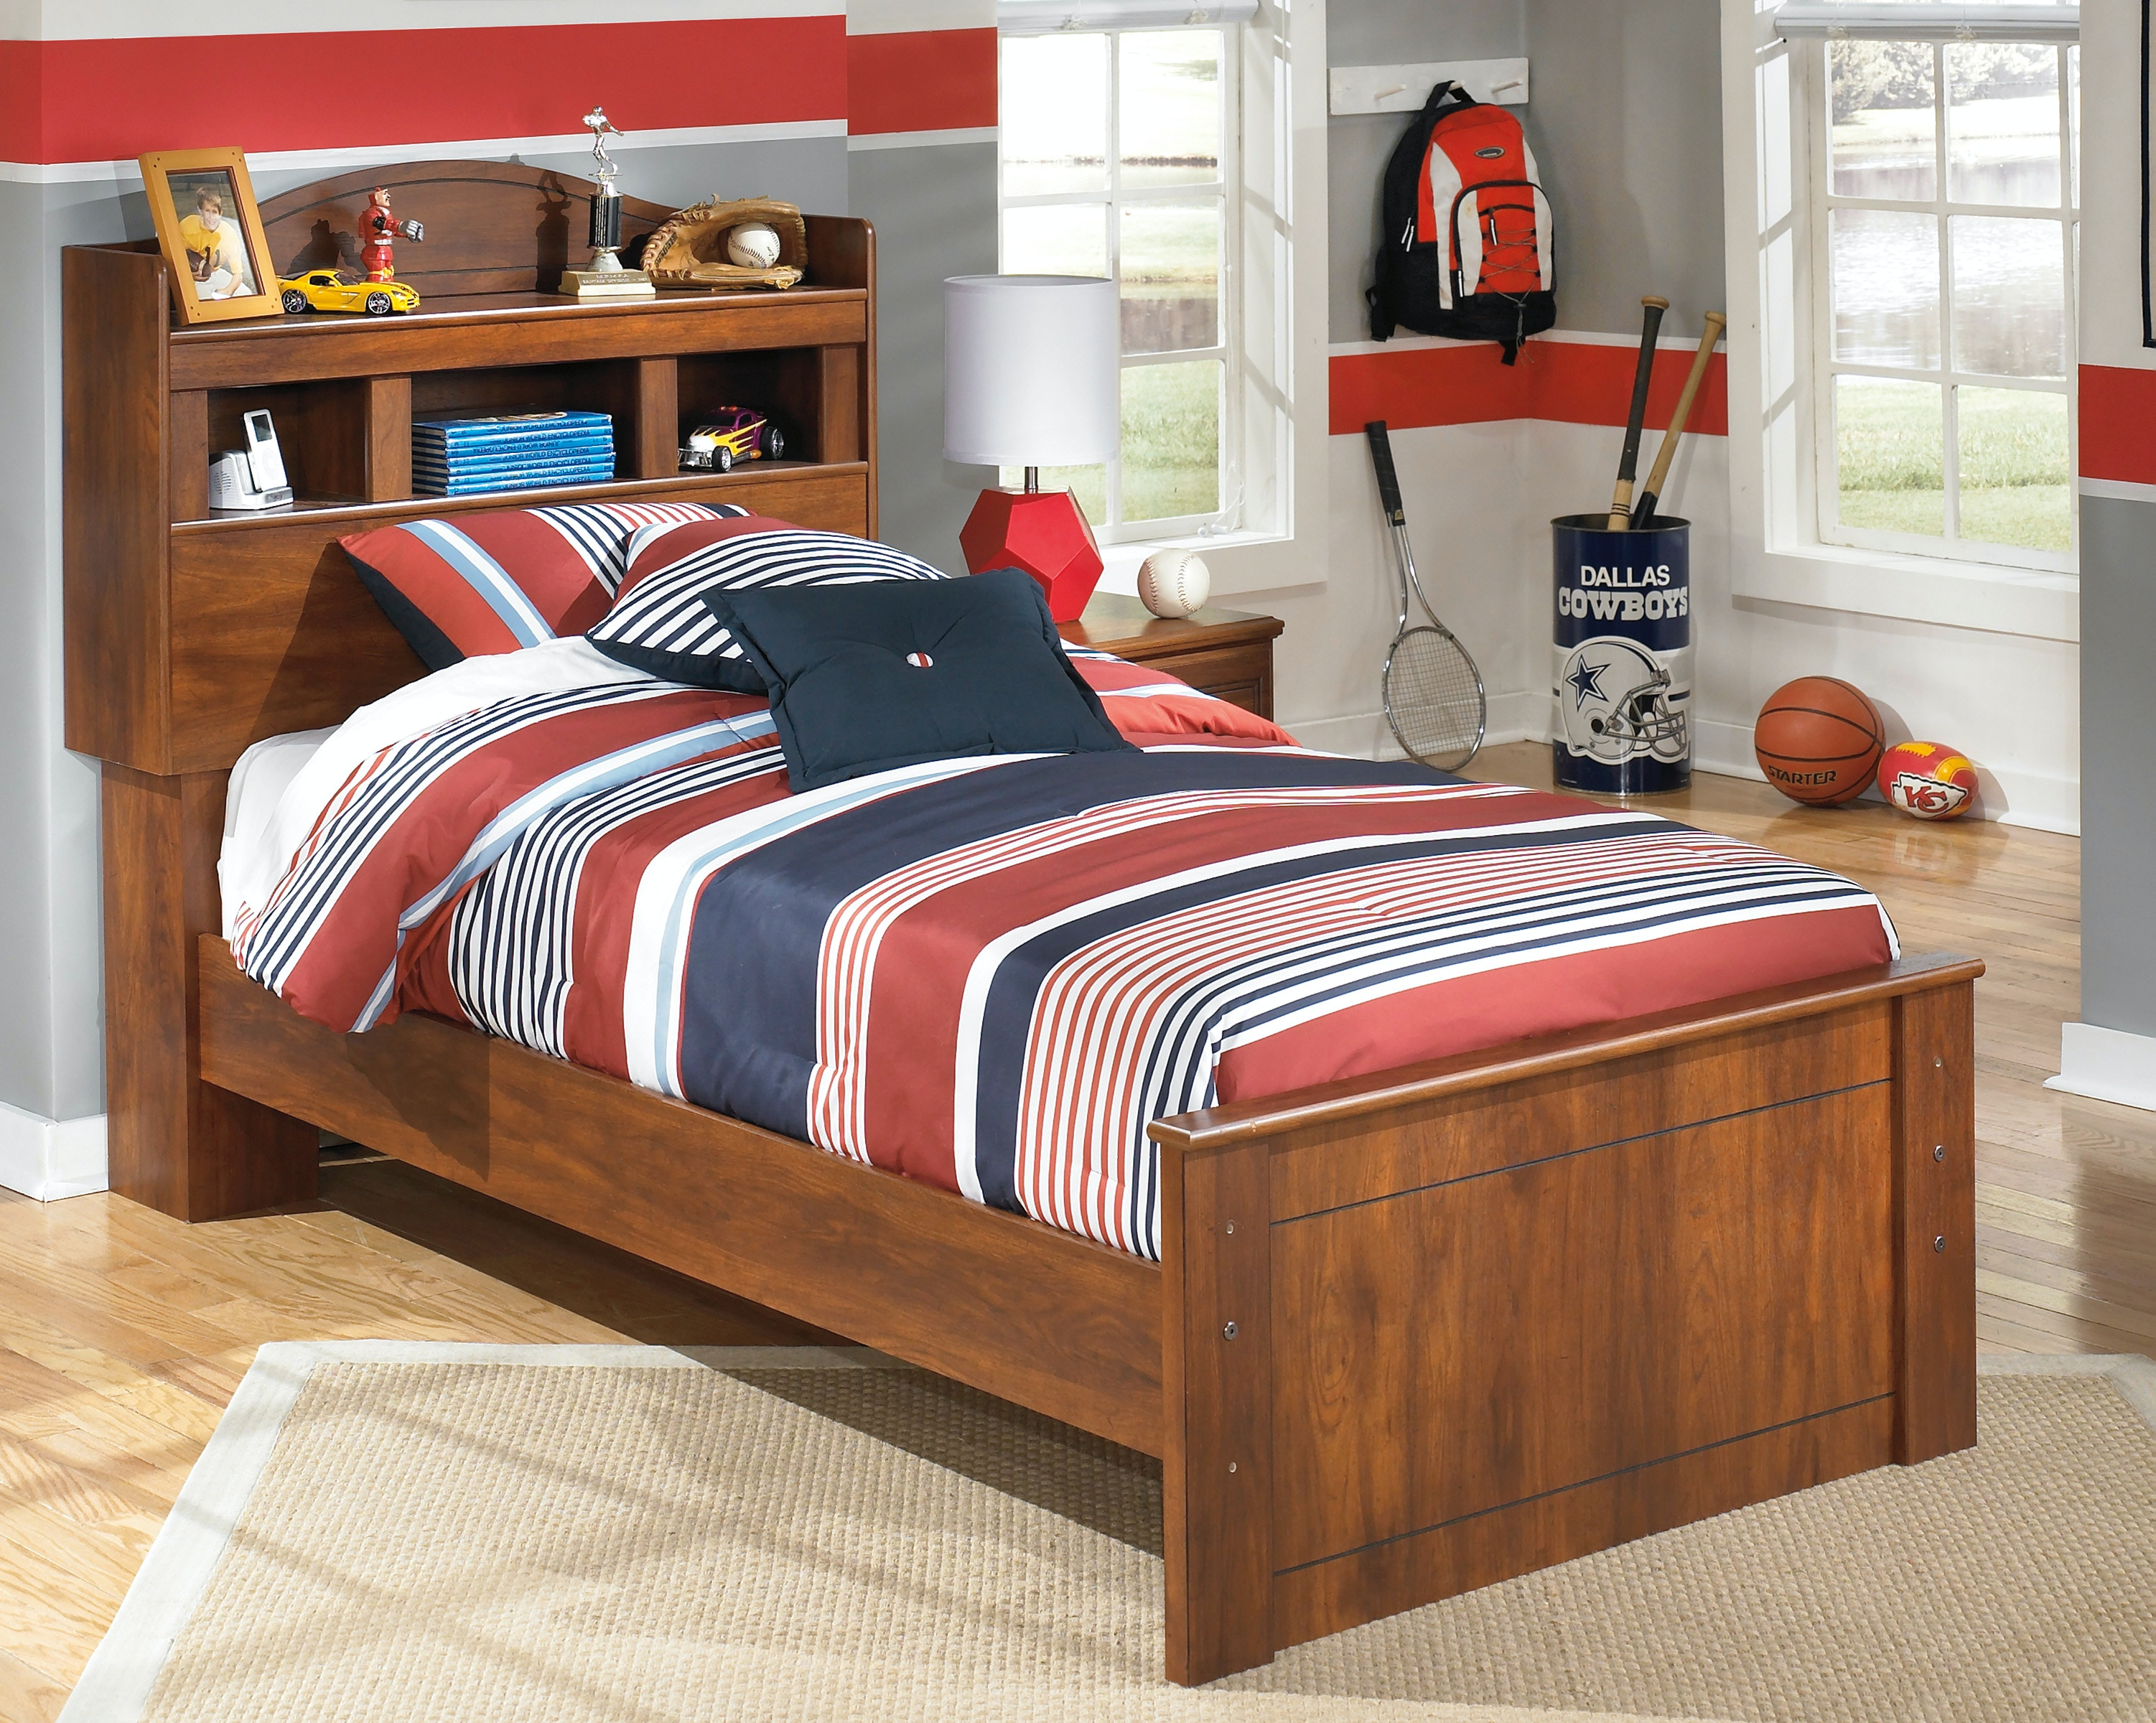 Signature Design By Ashley Barchan Twin Bookcase Bed B228 52/63/82